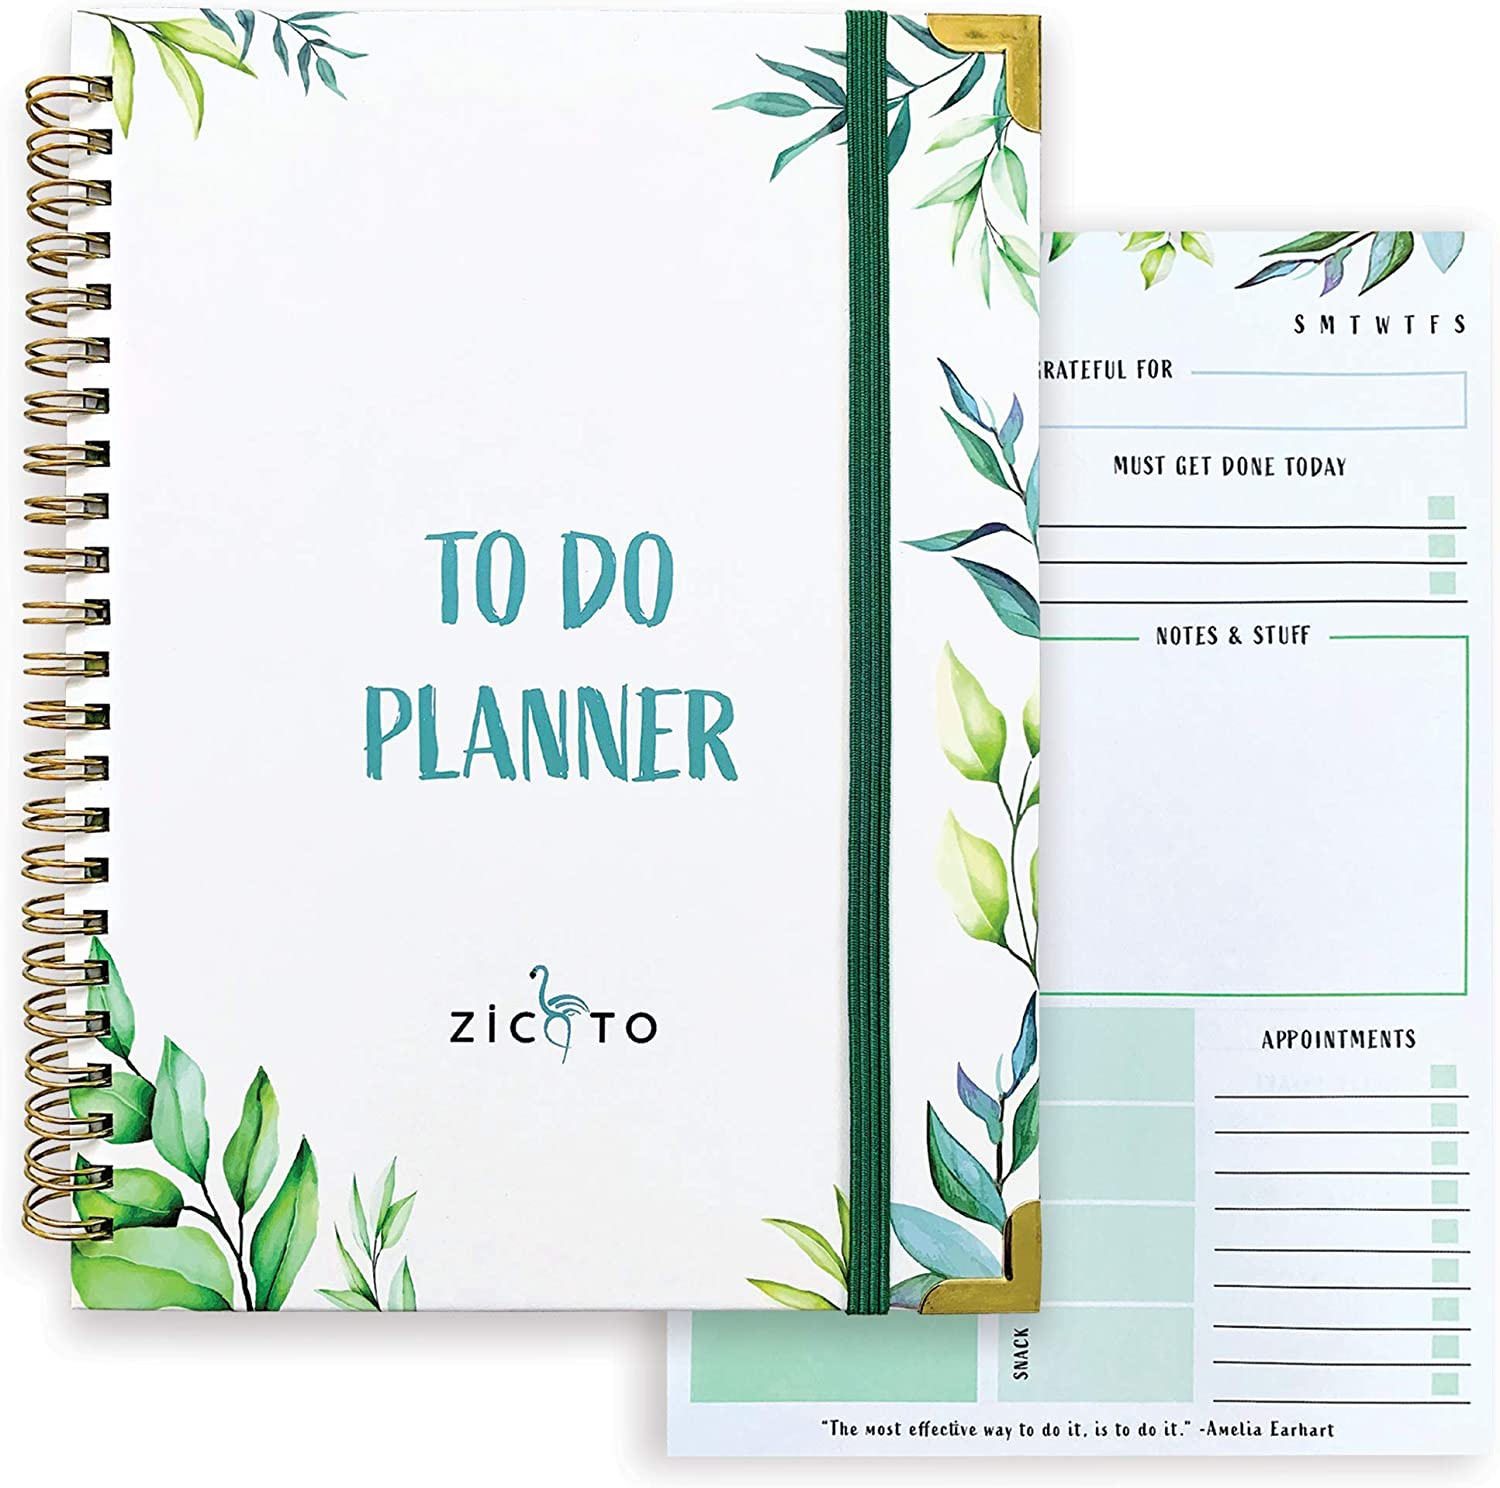 Simplified Greenery To Do List Notebook - Beautiful Daily Planner Easily Organizes Your Daily Tasks And Boosts Productivity - The Perfect Journal And Undated Office Supplies Notepad For Women